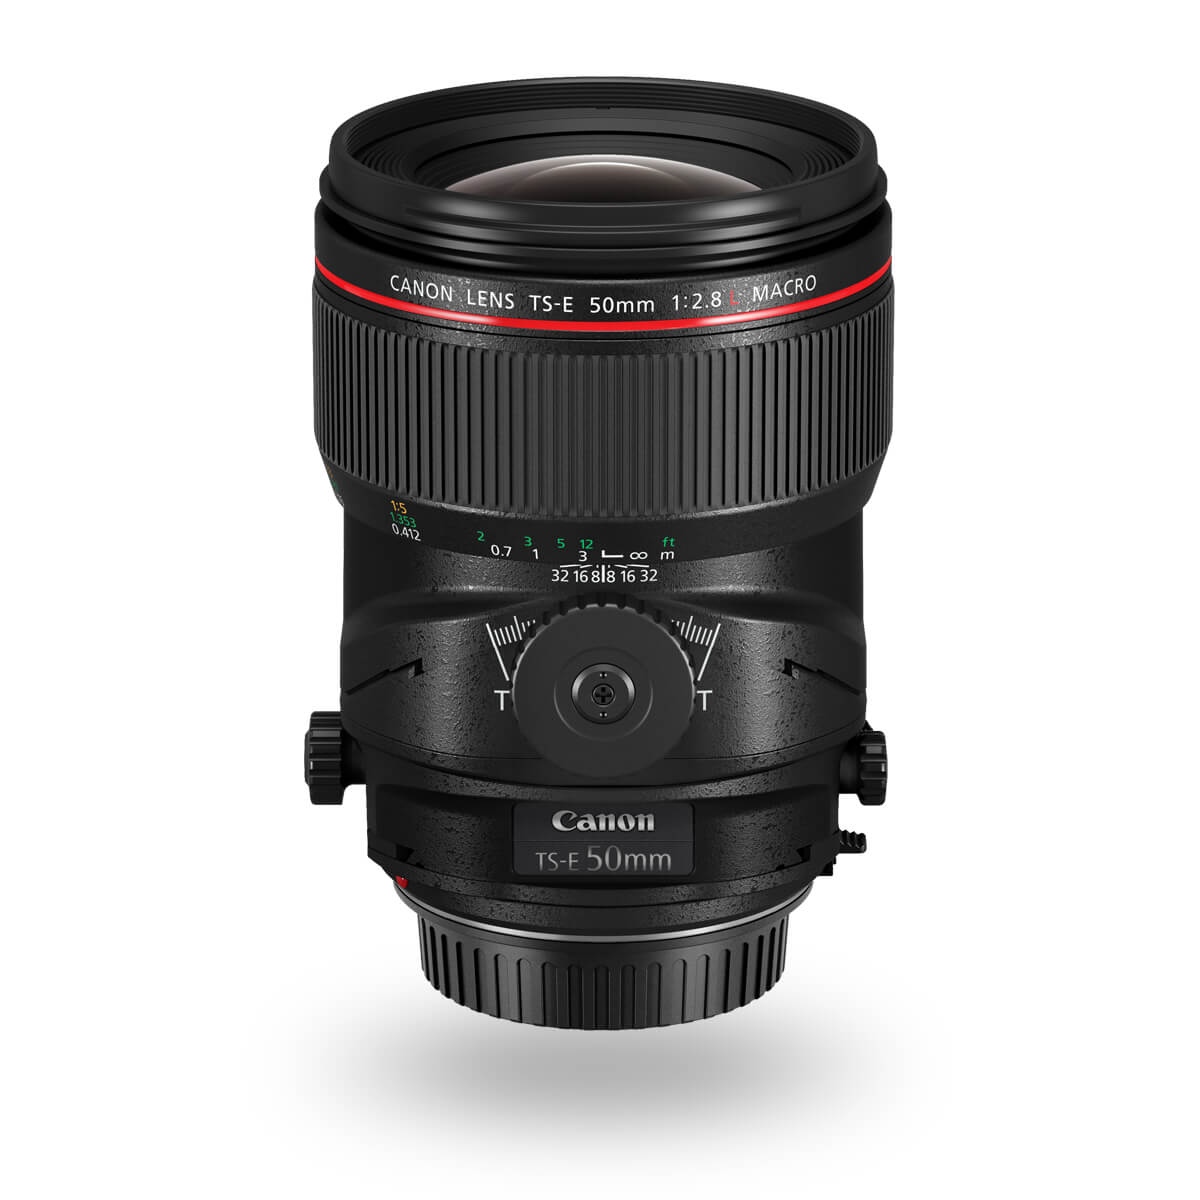 TS-E 50mm f/2.8L Macro Tilt Shift hero image